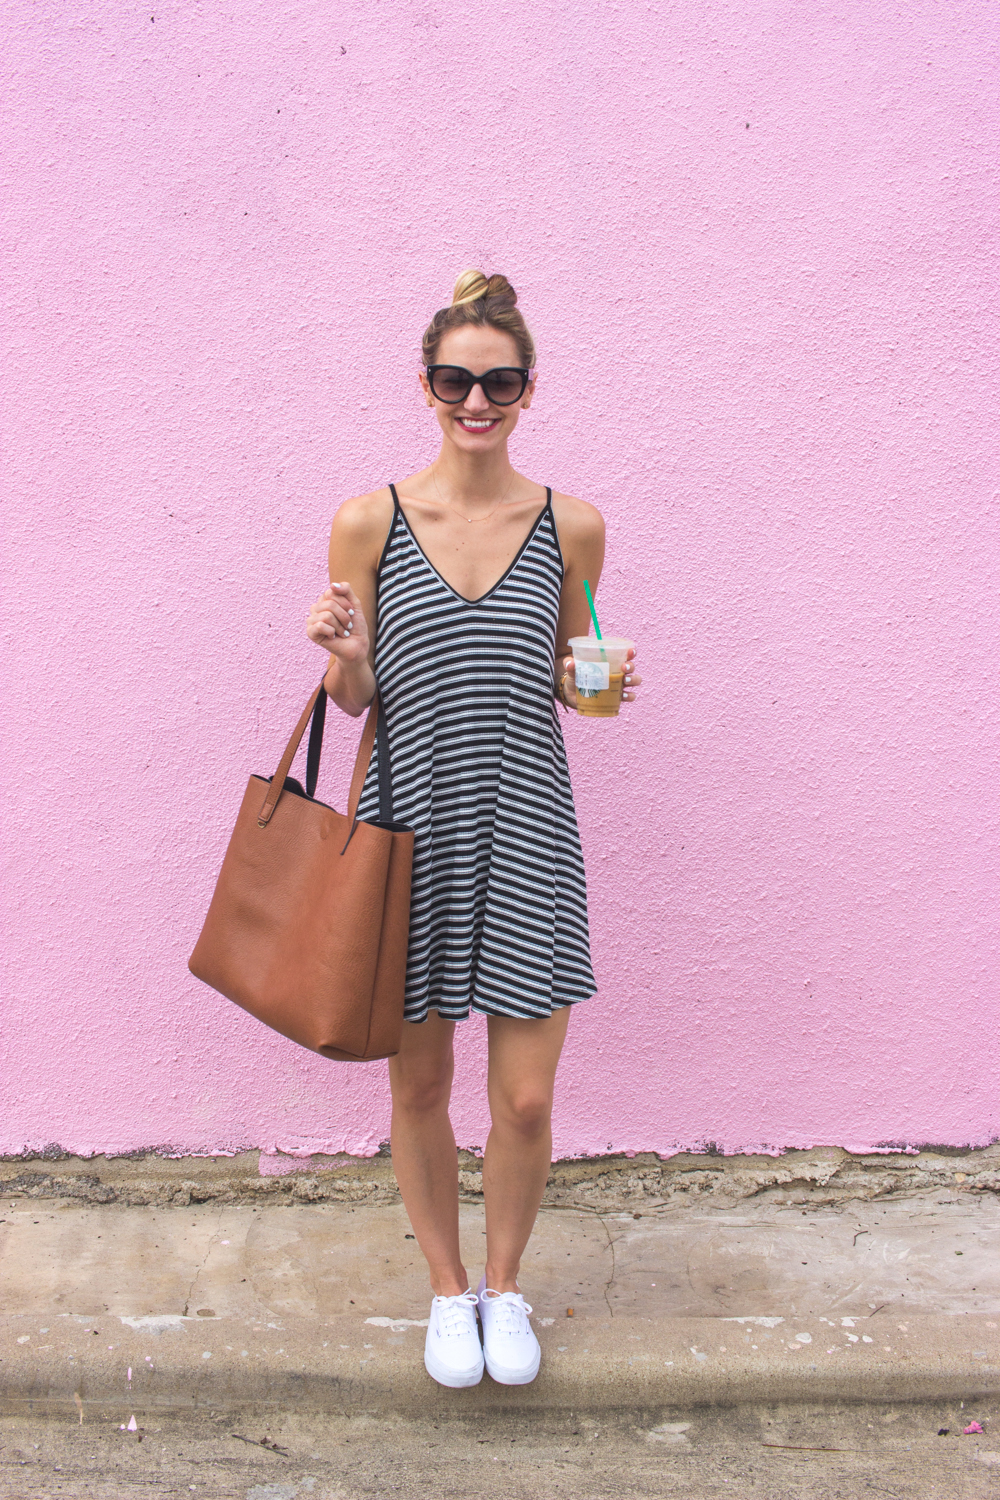 livvyland-blog-olivia-watson-austin-texas-fashion-blogger-pink-wall-coffee-run-summer-lace-up-back-striped-sun-dress-vans-sneakers-1